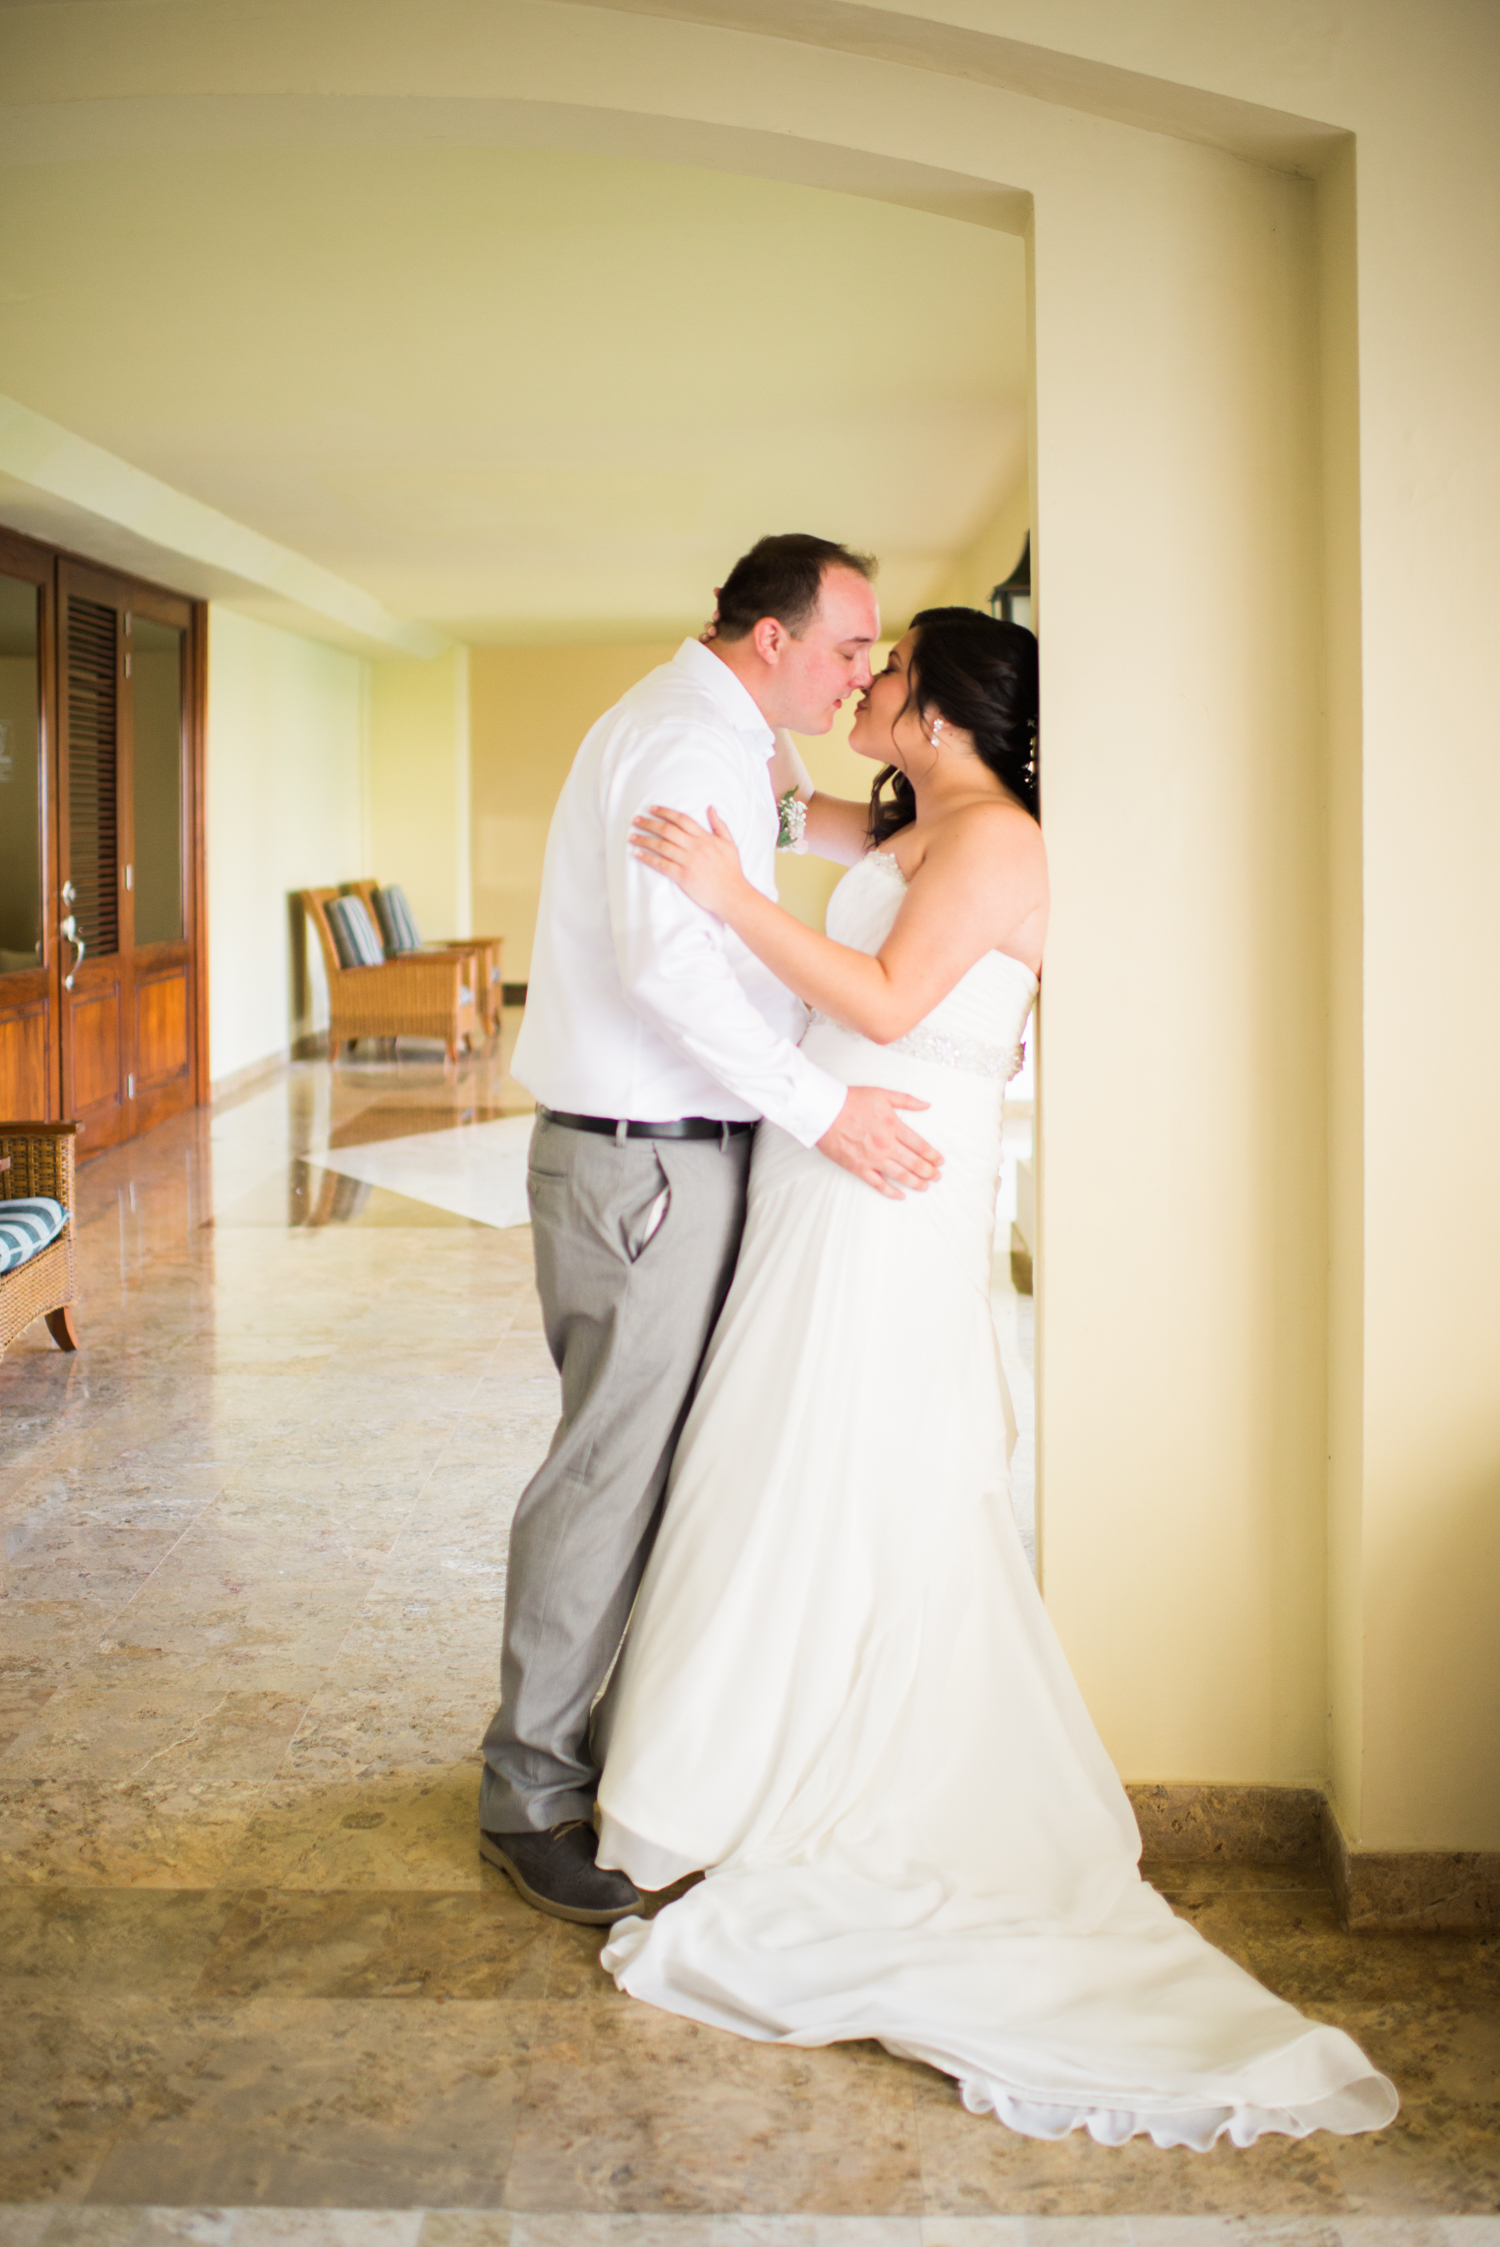 JadeandRyan-Montego-Bay-Jamaica-Wedding-Iberostar-Resort-Beach-40.jpg